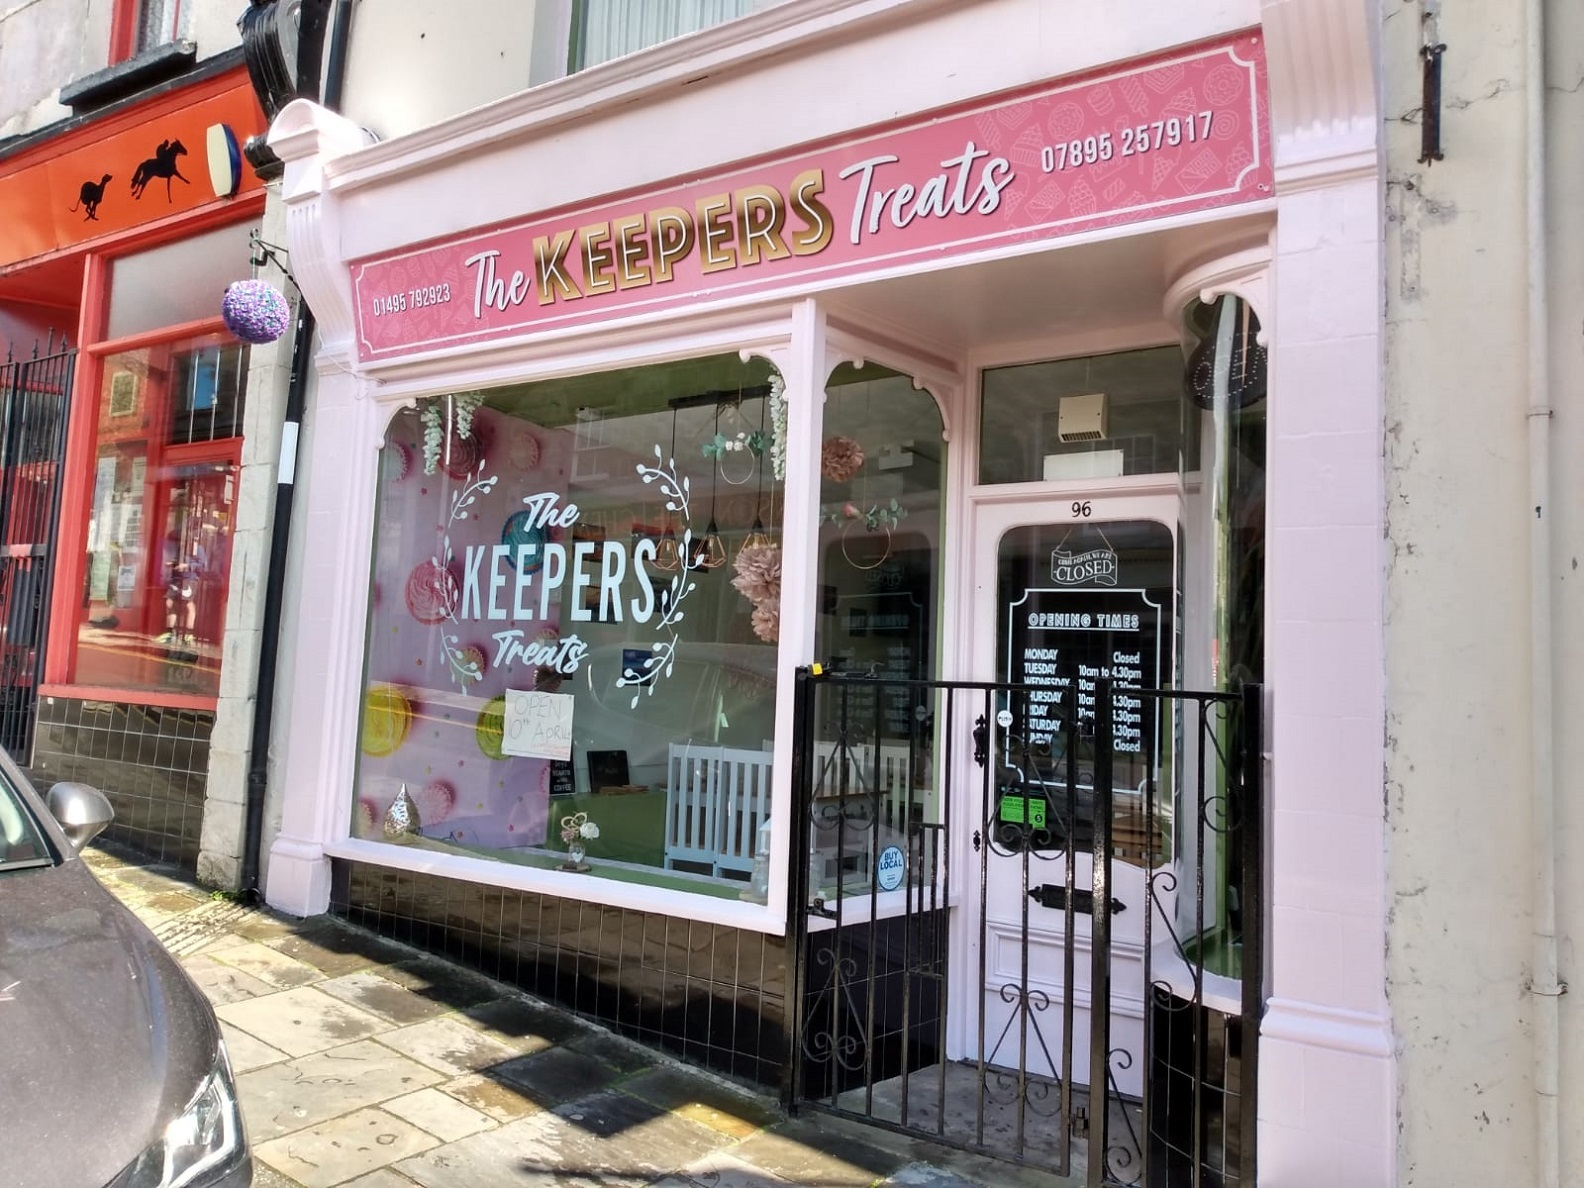 The Keepers Treats, which is set to reopen after recently rebranding.